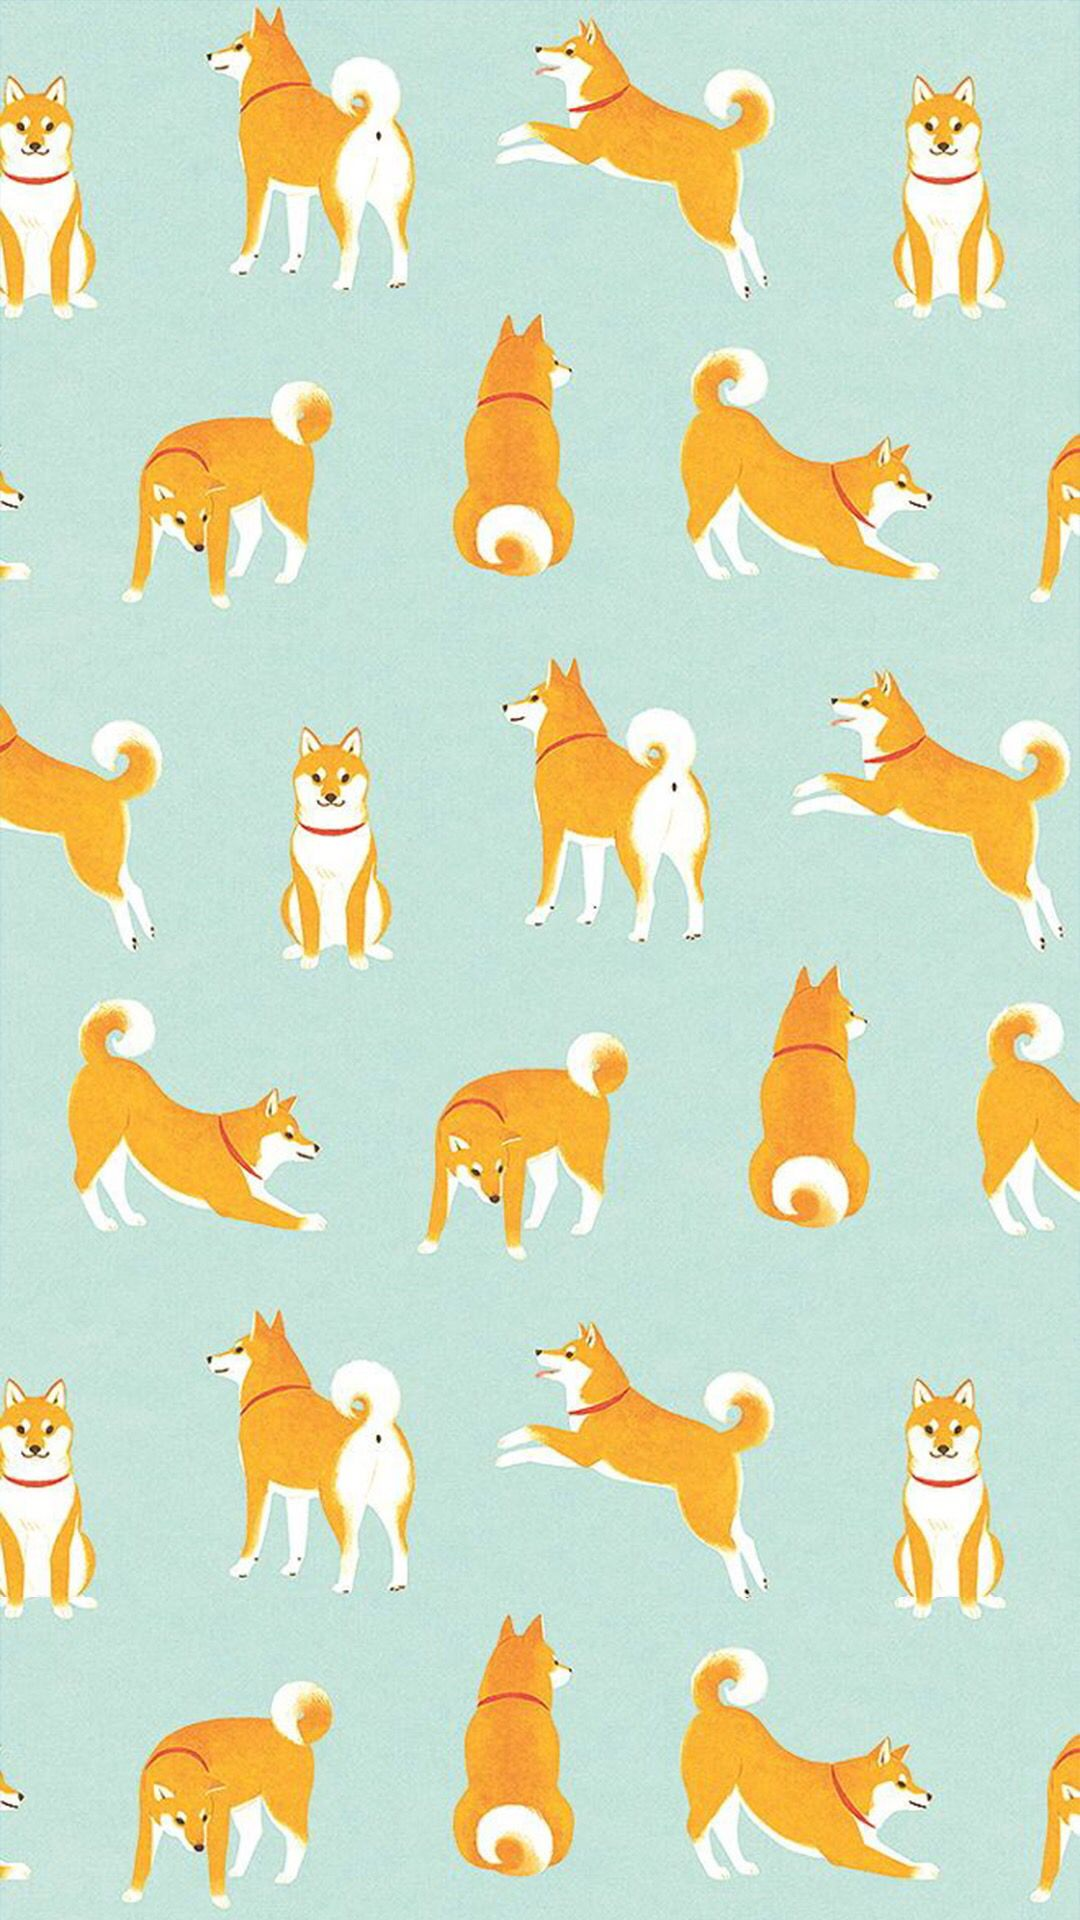 柴犬がいっぱいiphone壁紙 wallpaper backgrounds | cute